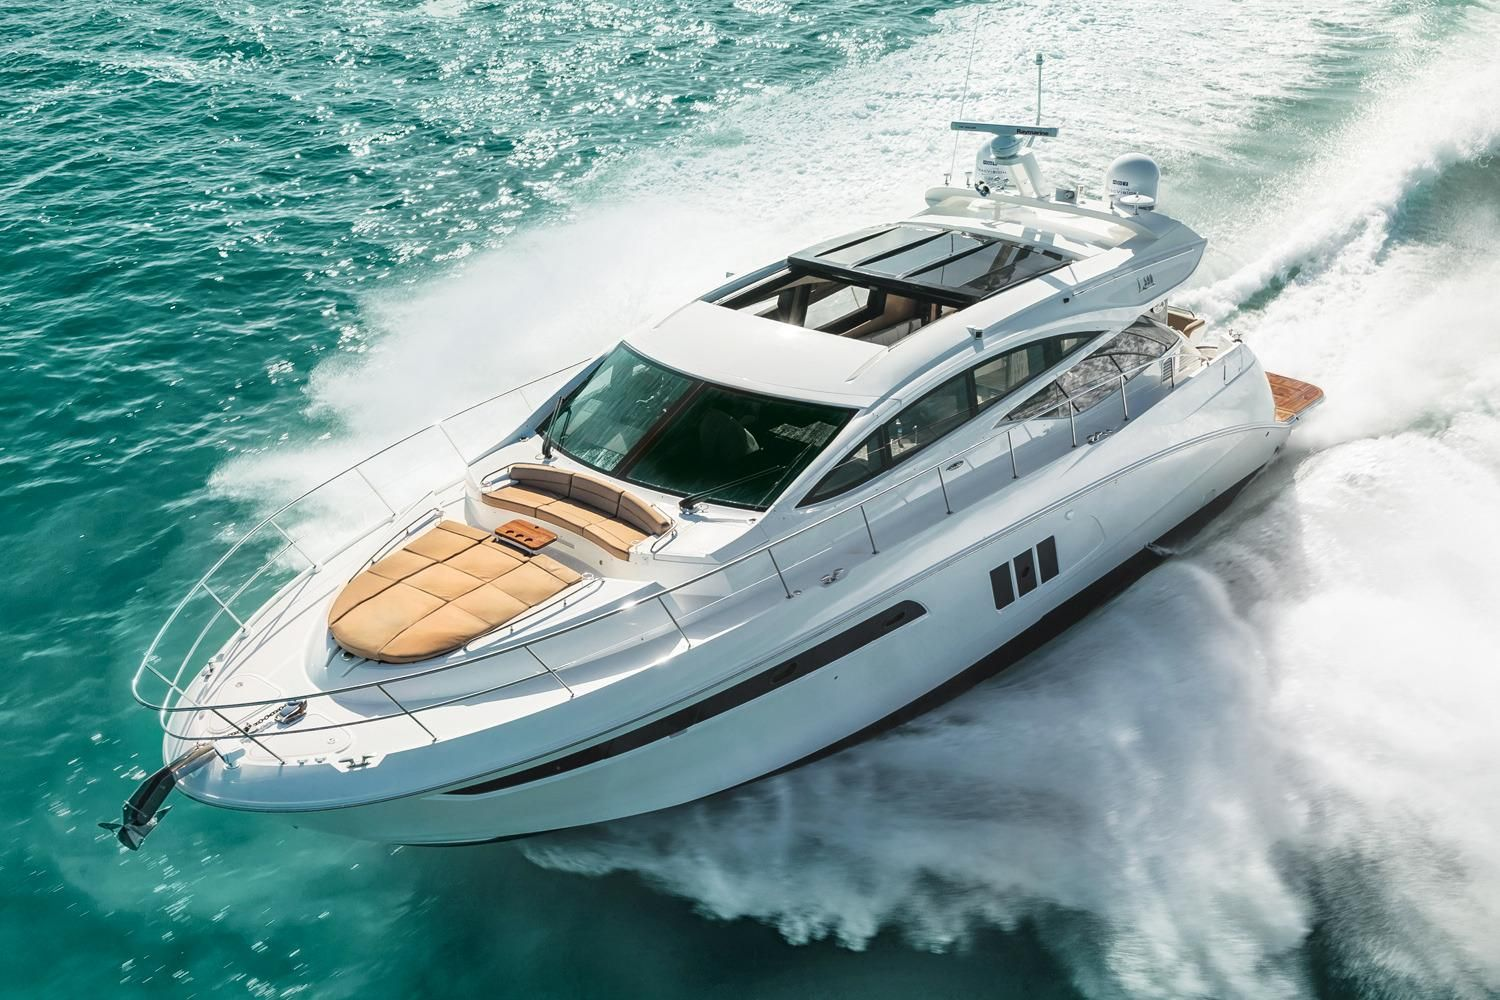 2017 sea ray l590 power boat for sale for Sea ray motor yacht for sale